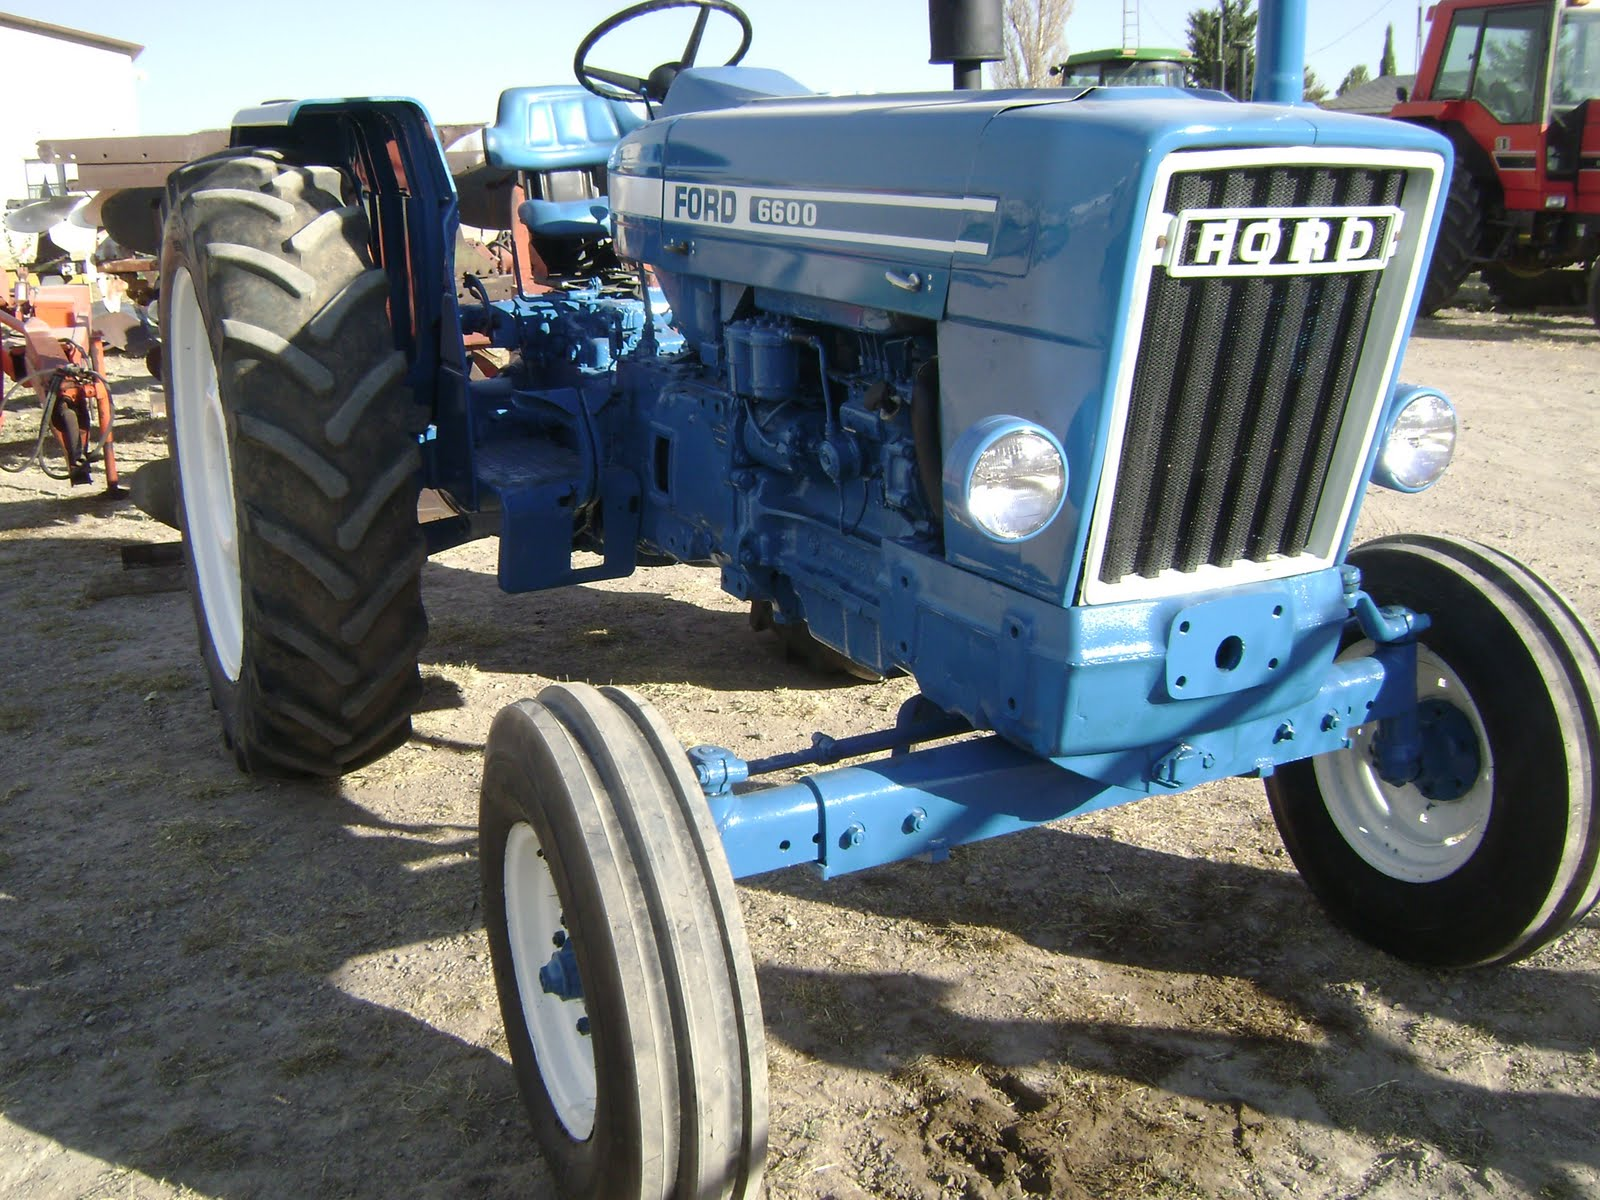 6600 Ford Tractor Parts Diagram : Ford tractor diagrams autos we